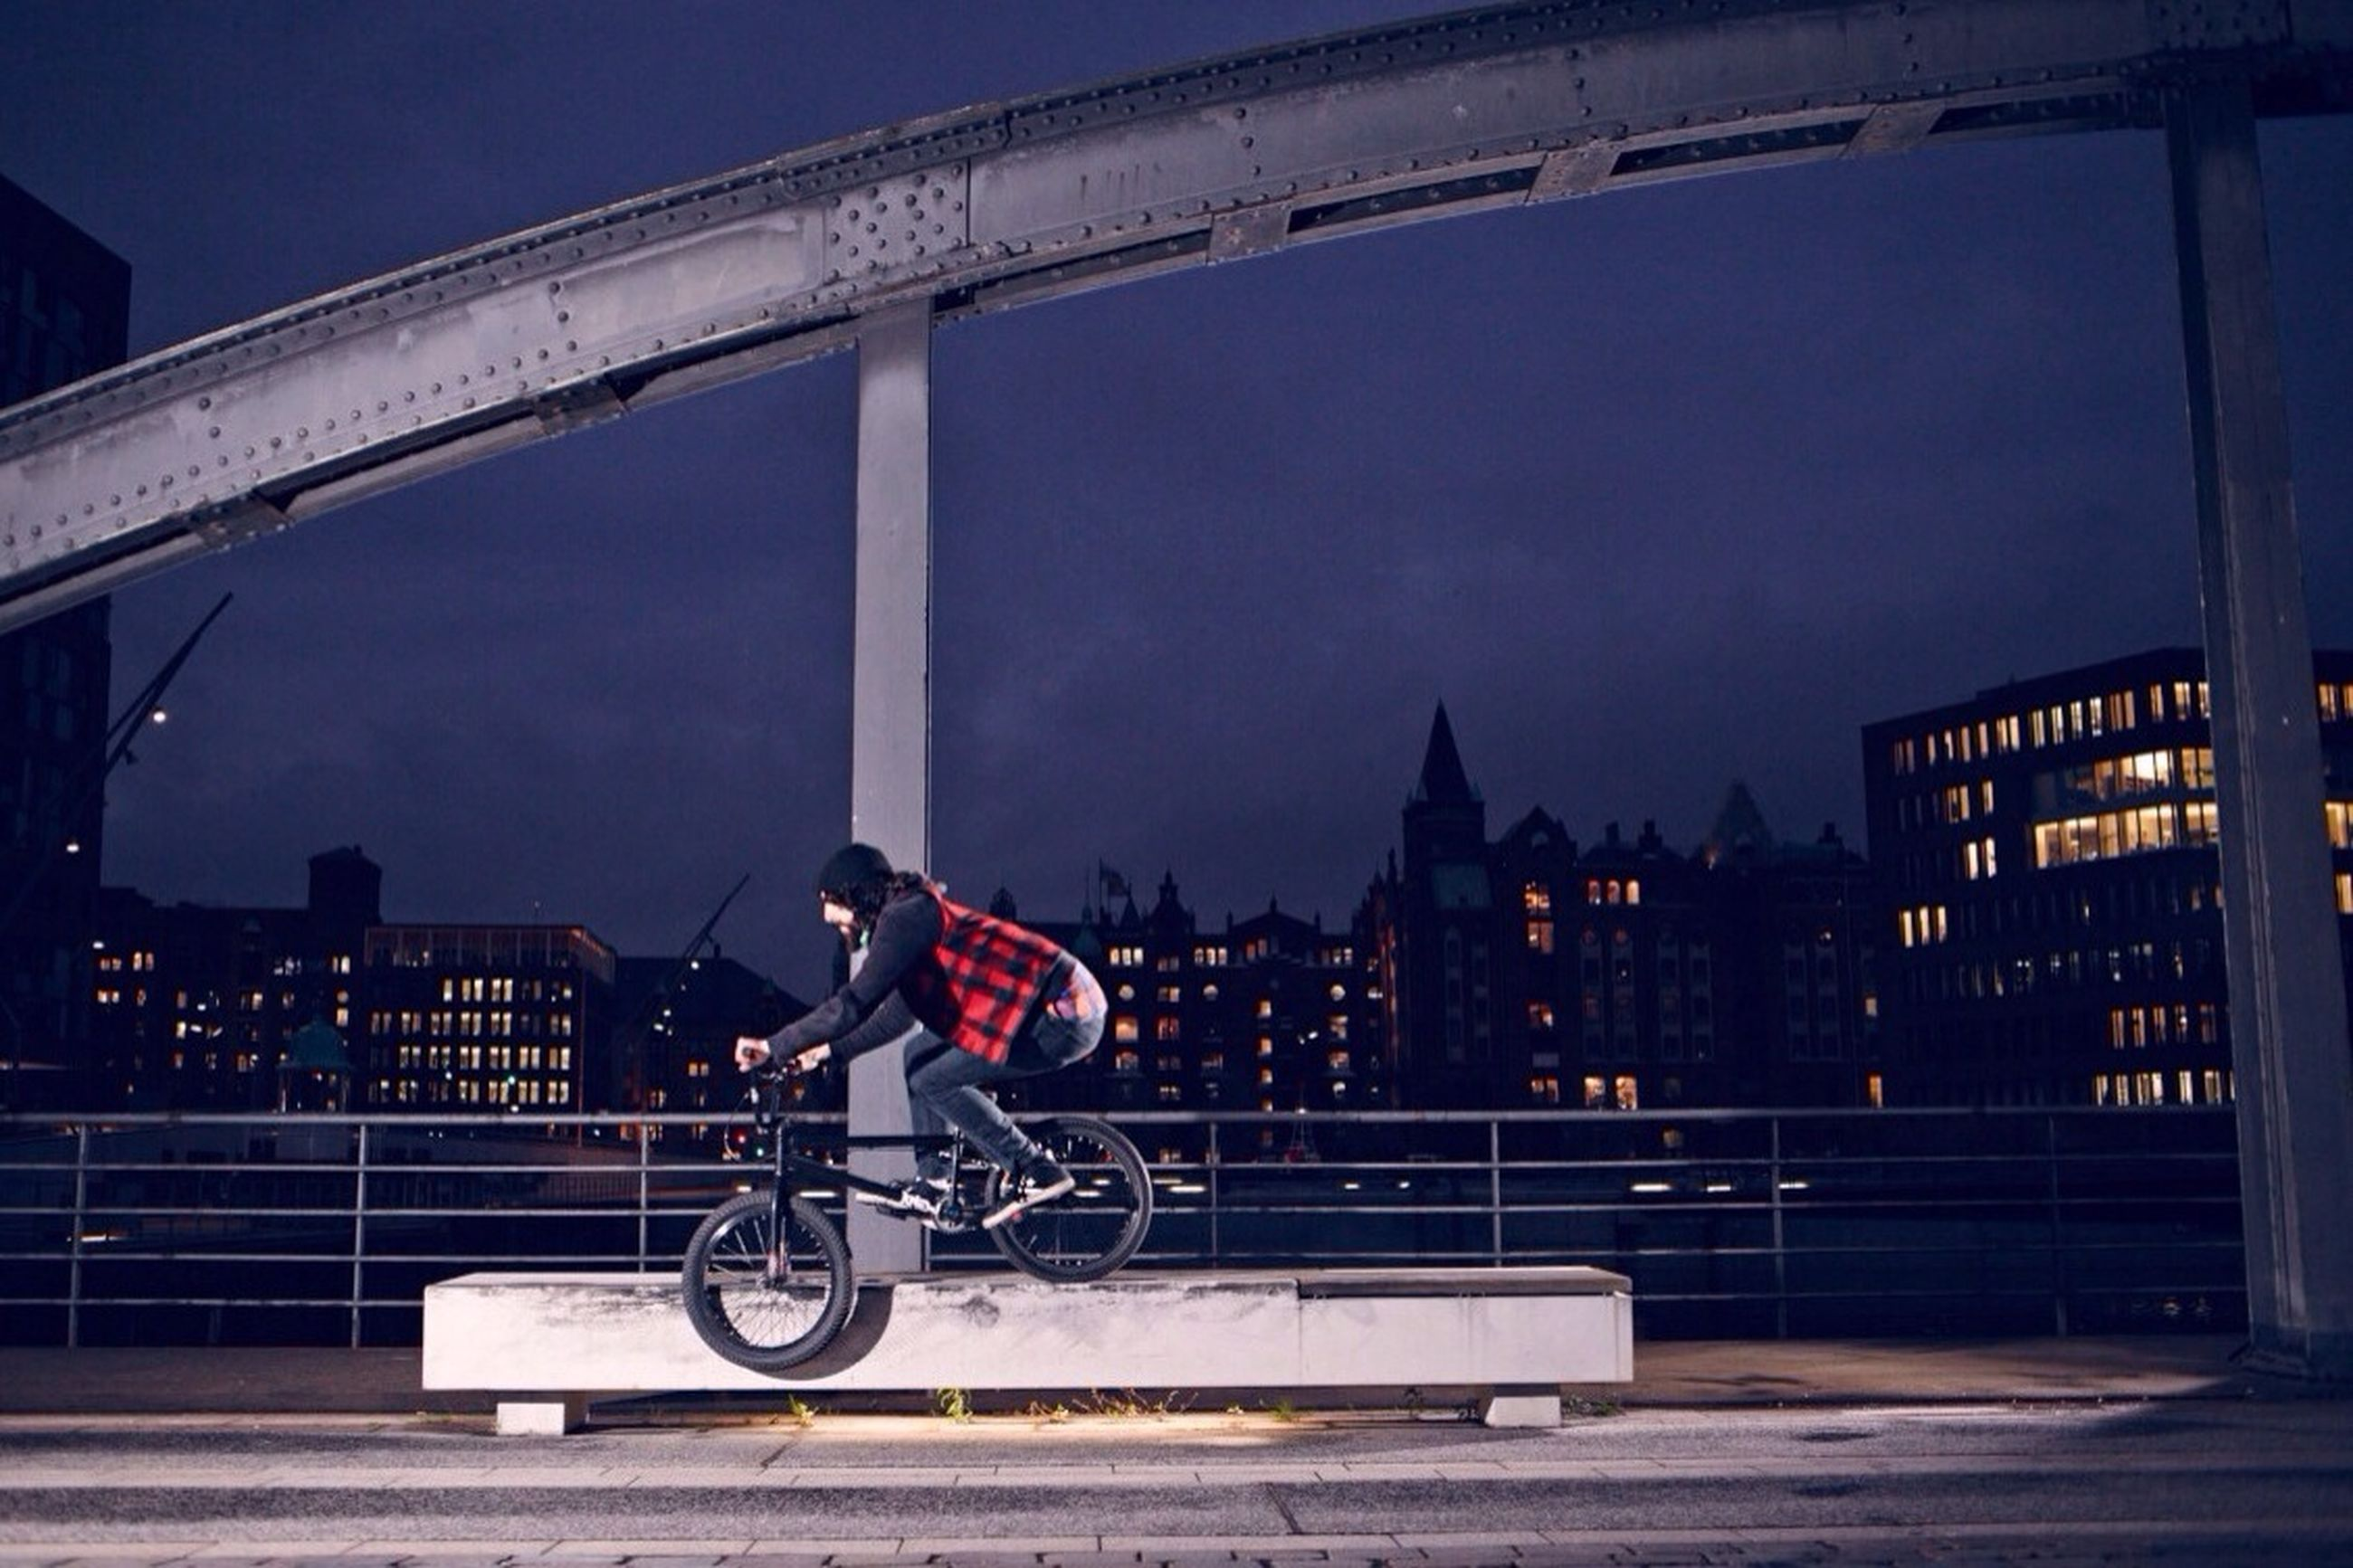 architecture, built structure, building exterior, transportation, bicycle, sky, railing, city, mode of transport, illuminated, full length, land vehicle, bridge - man made structure, lifestyles, men, connection, street, leisure activity